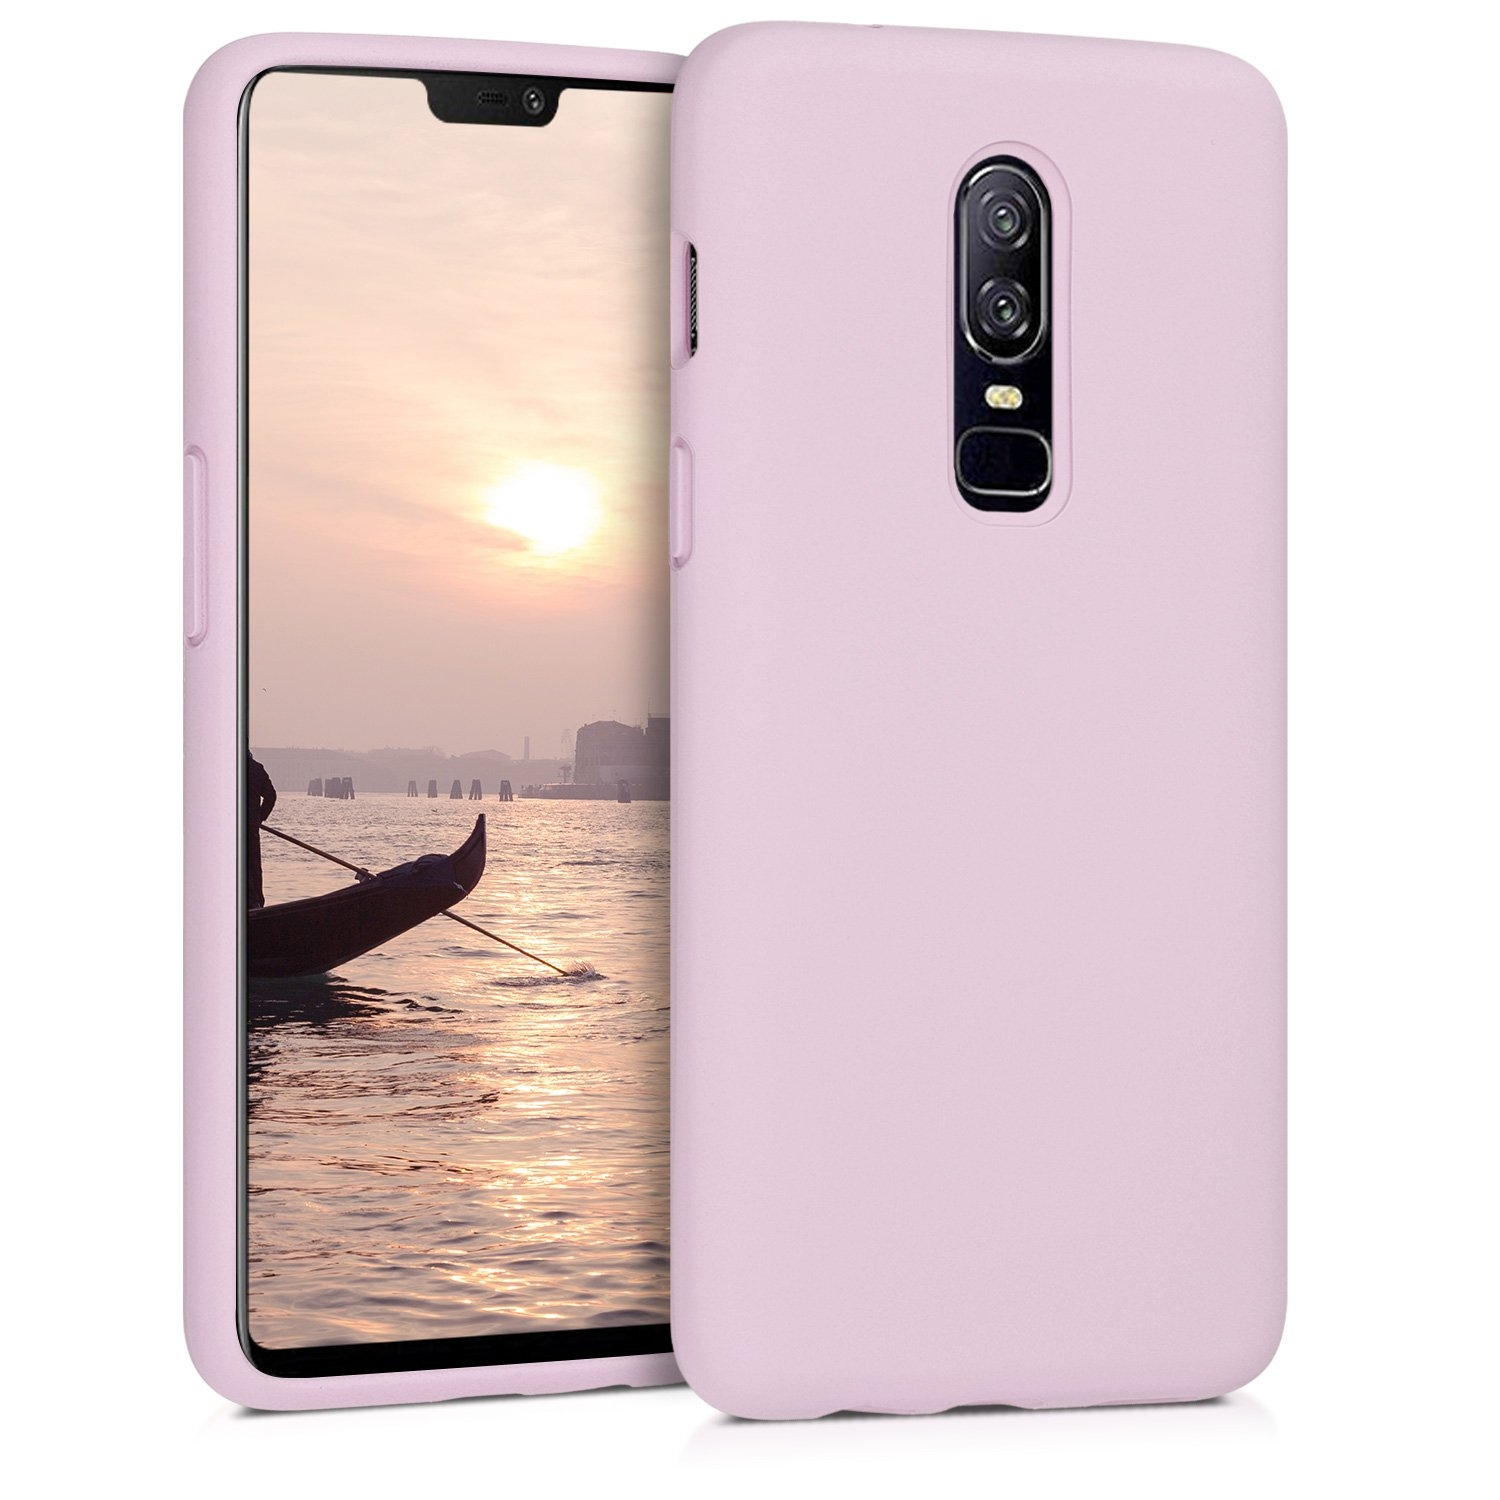 KW Θήκη Σιλικόνης OnePlus 6 - Soft Flexible Rubber Protective Cover - Mauve (46122.140)